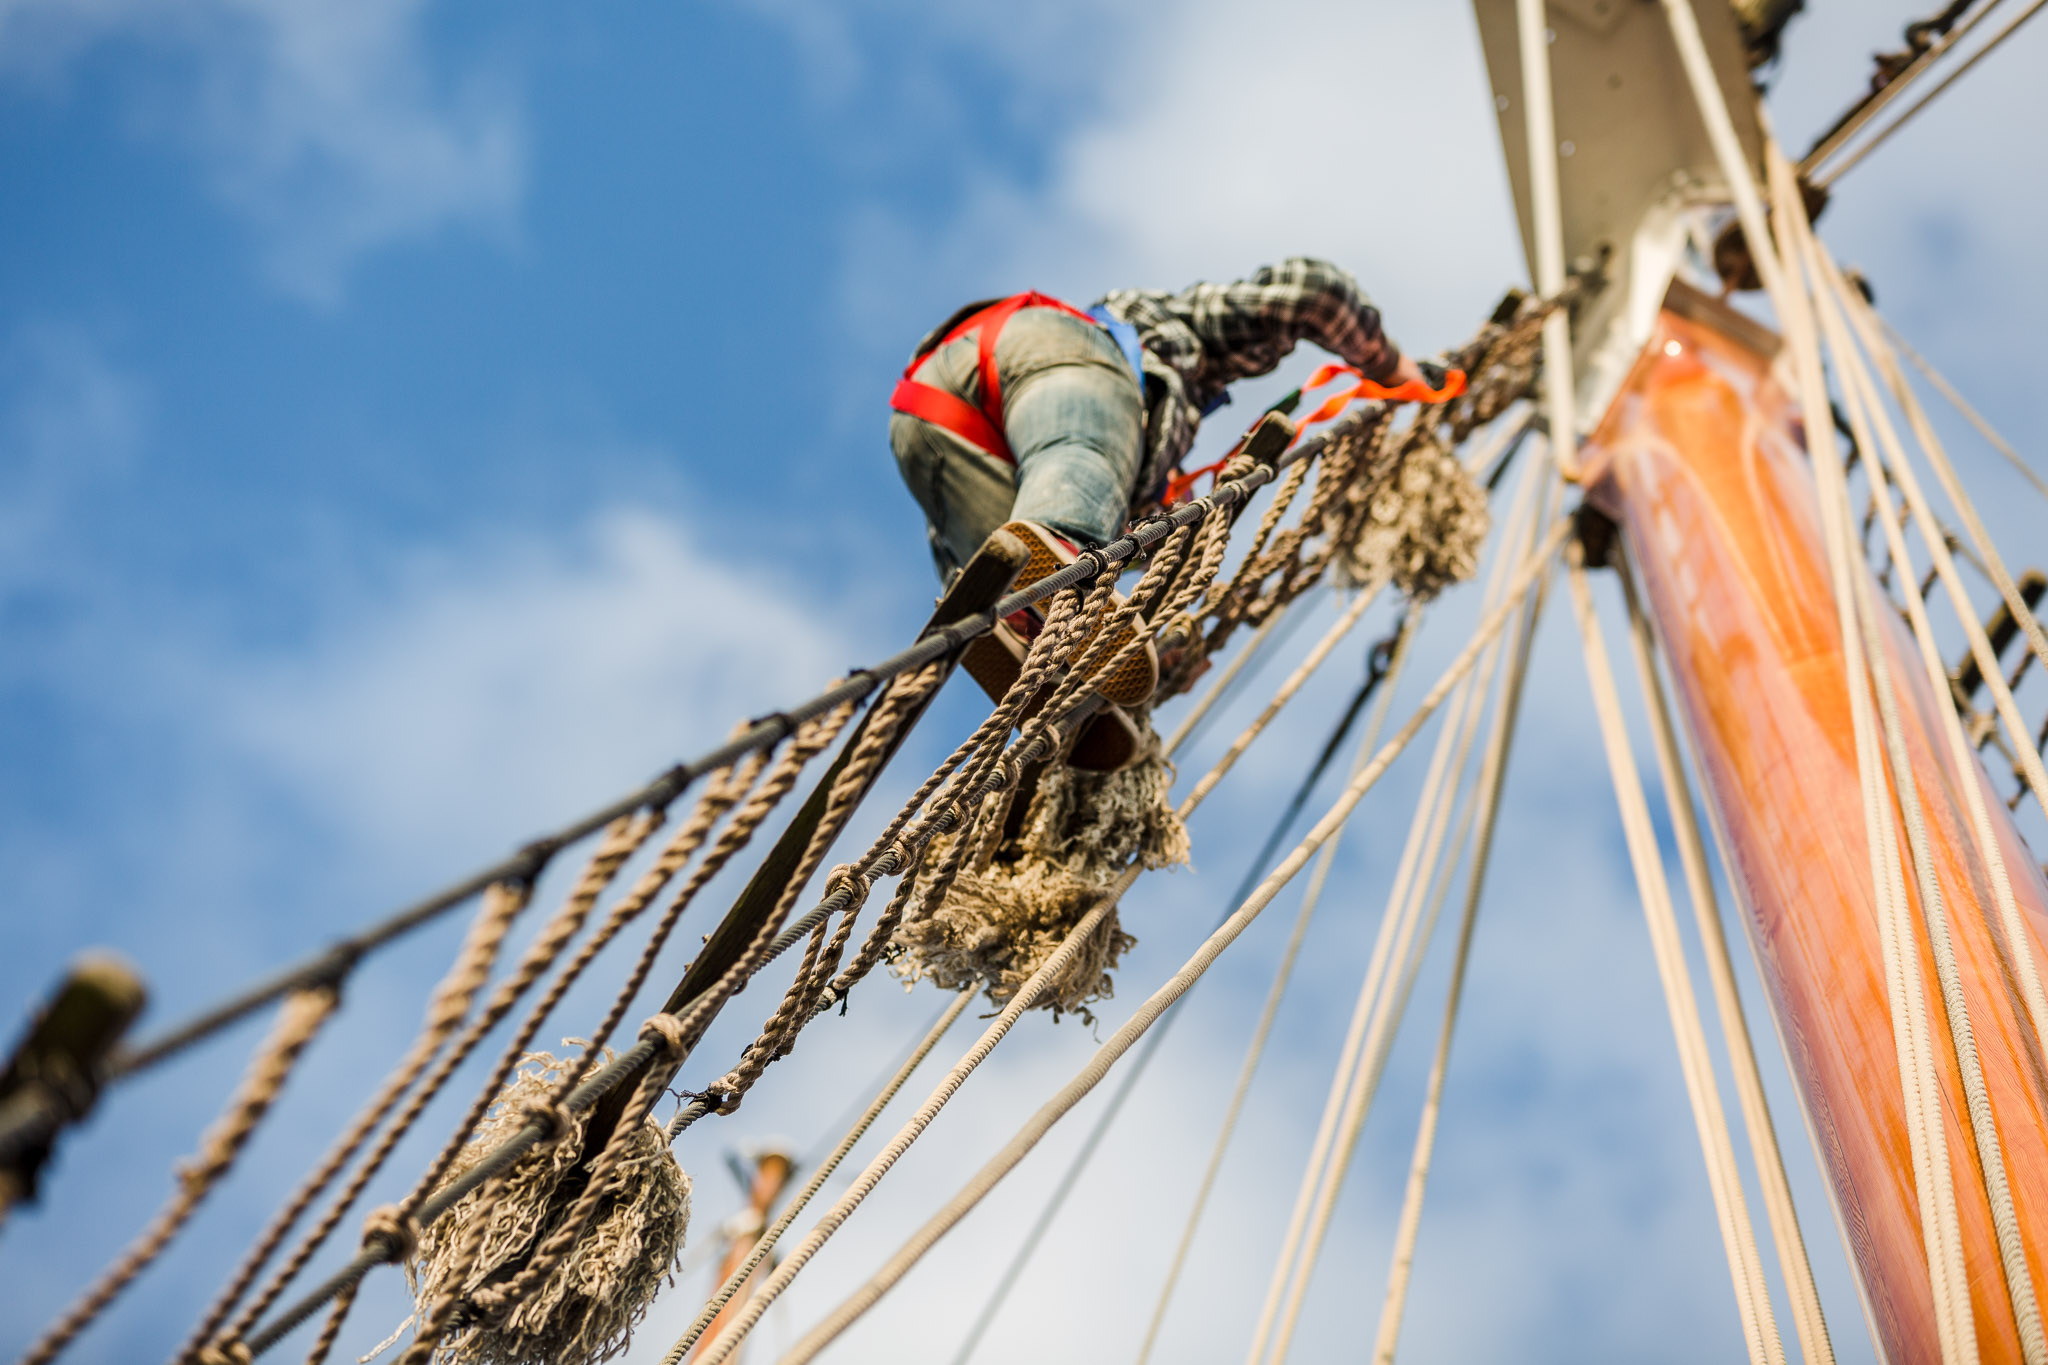 Climbing the rigging on a sailing boat in cornwall